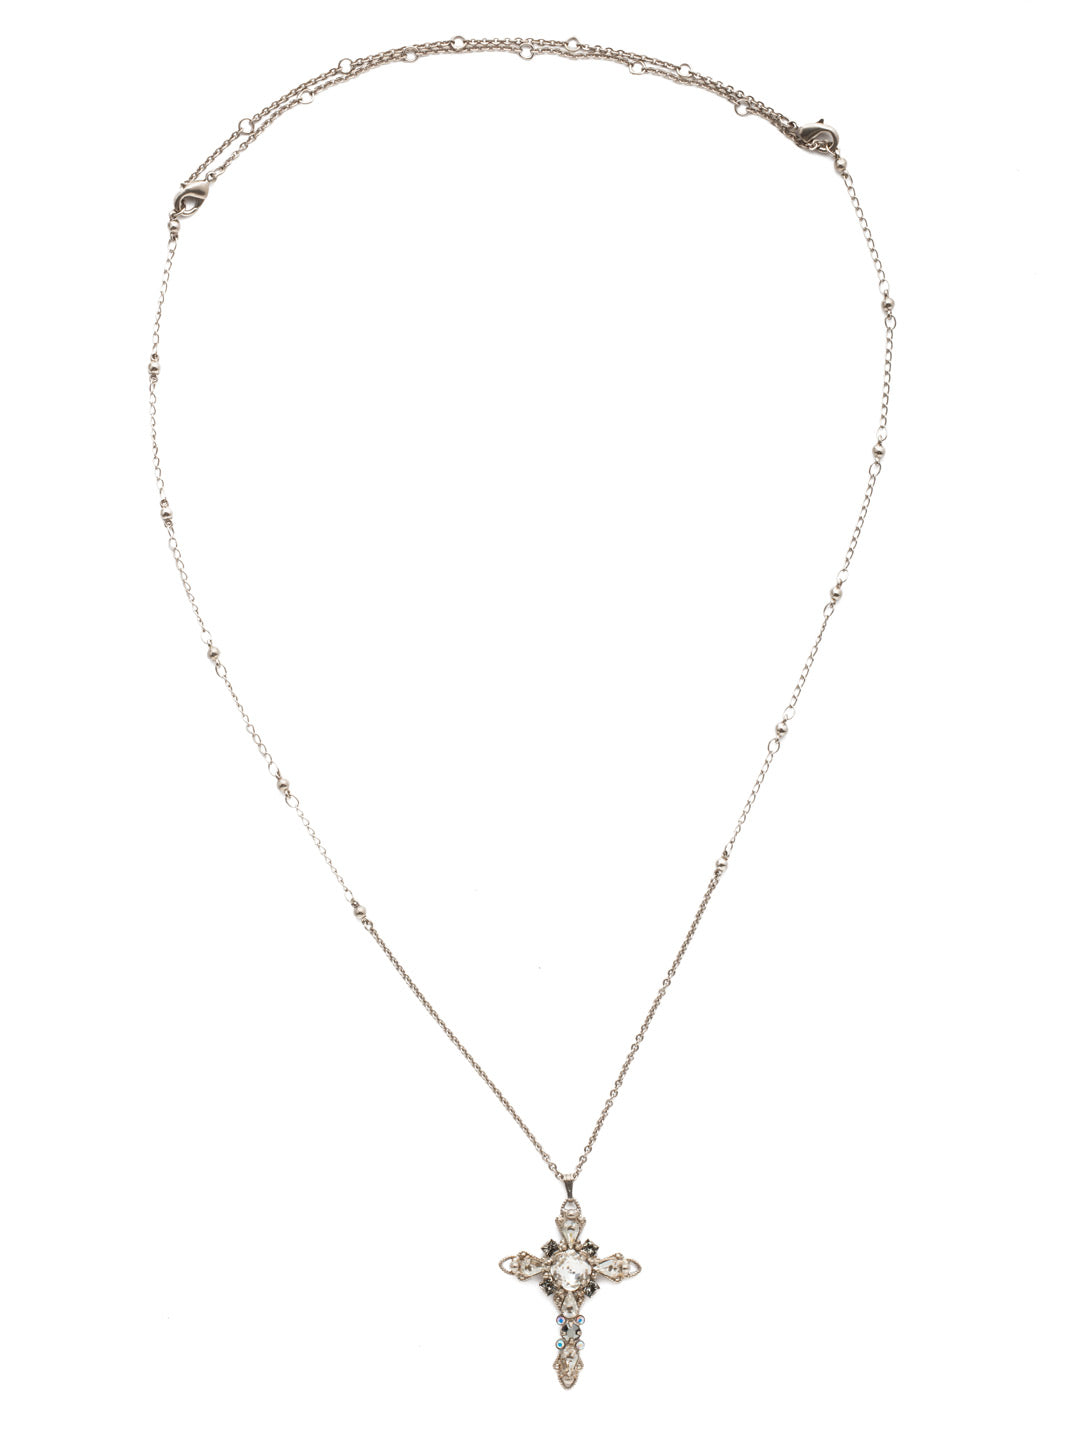 Elowen Pendant Necklace - NDS3ASCRO